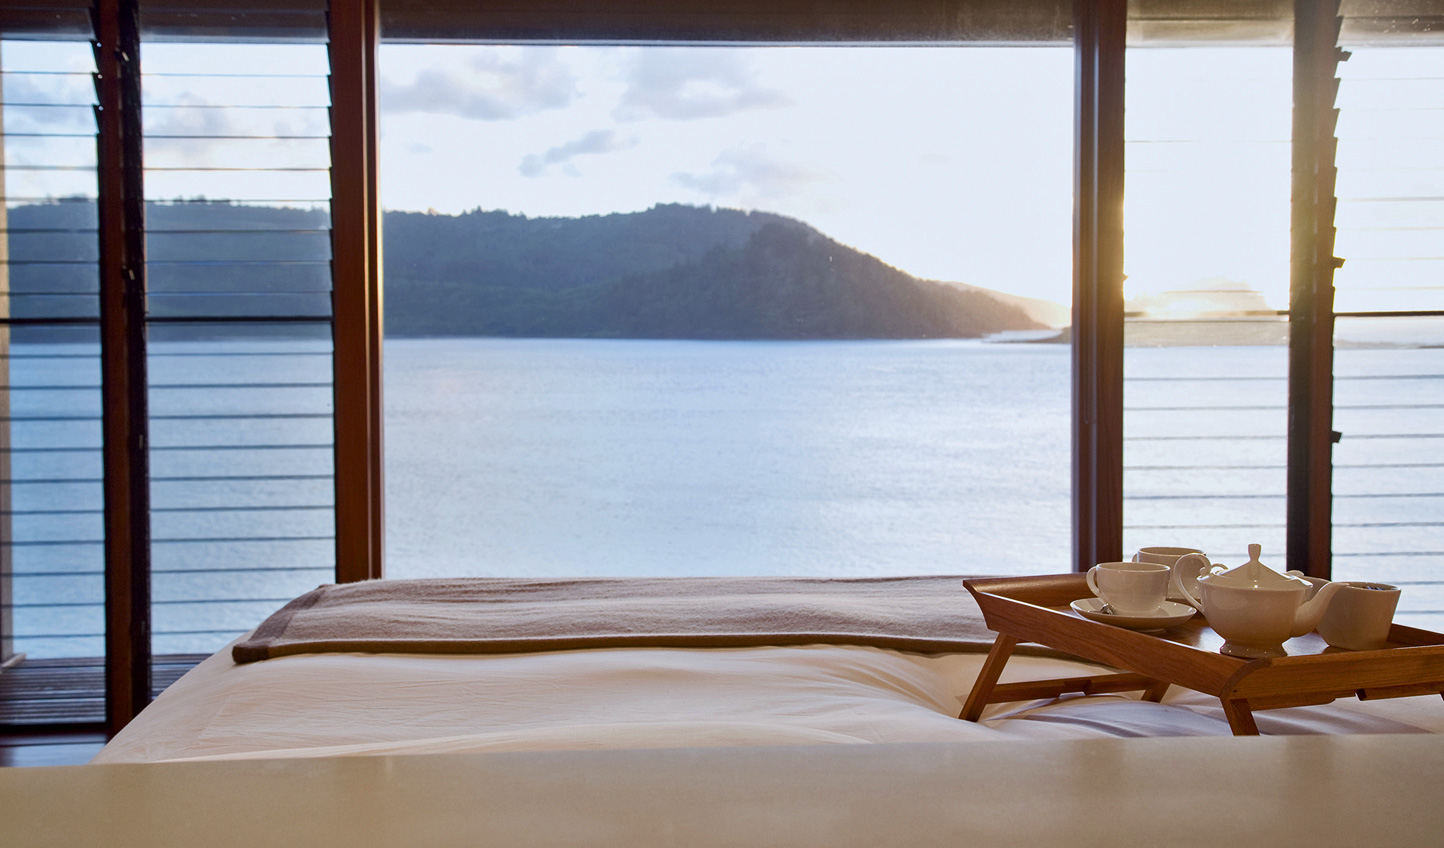 Breakfast in bed at Qualia is an offer you cannot refuse